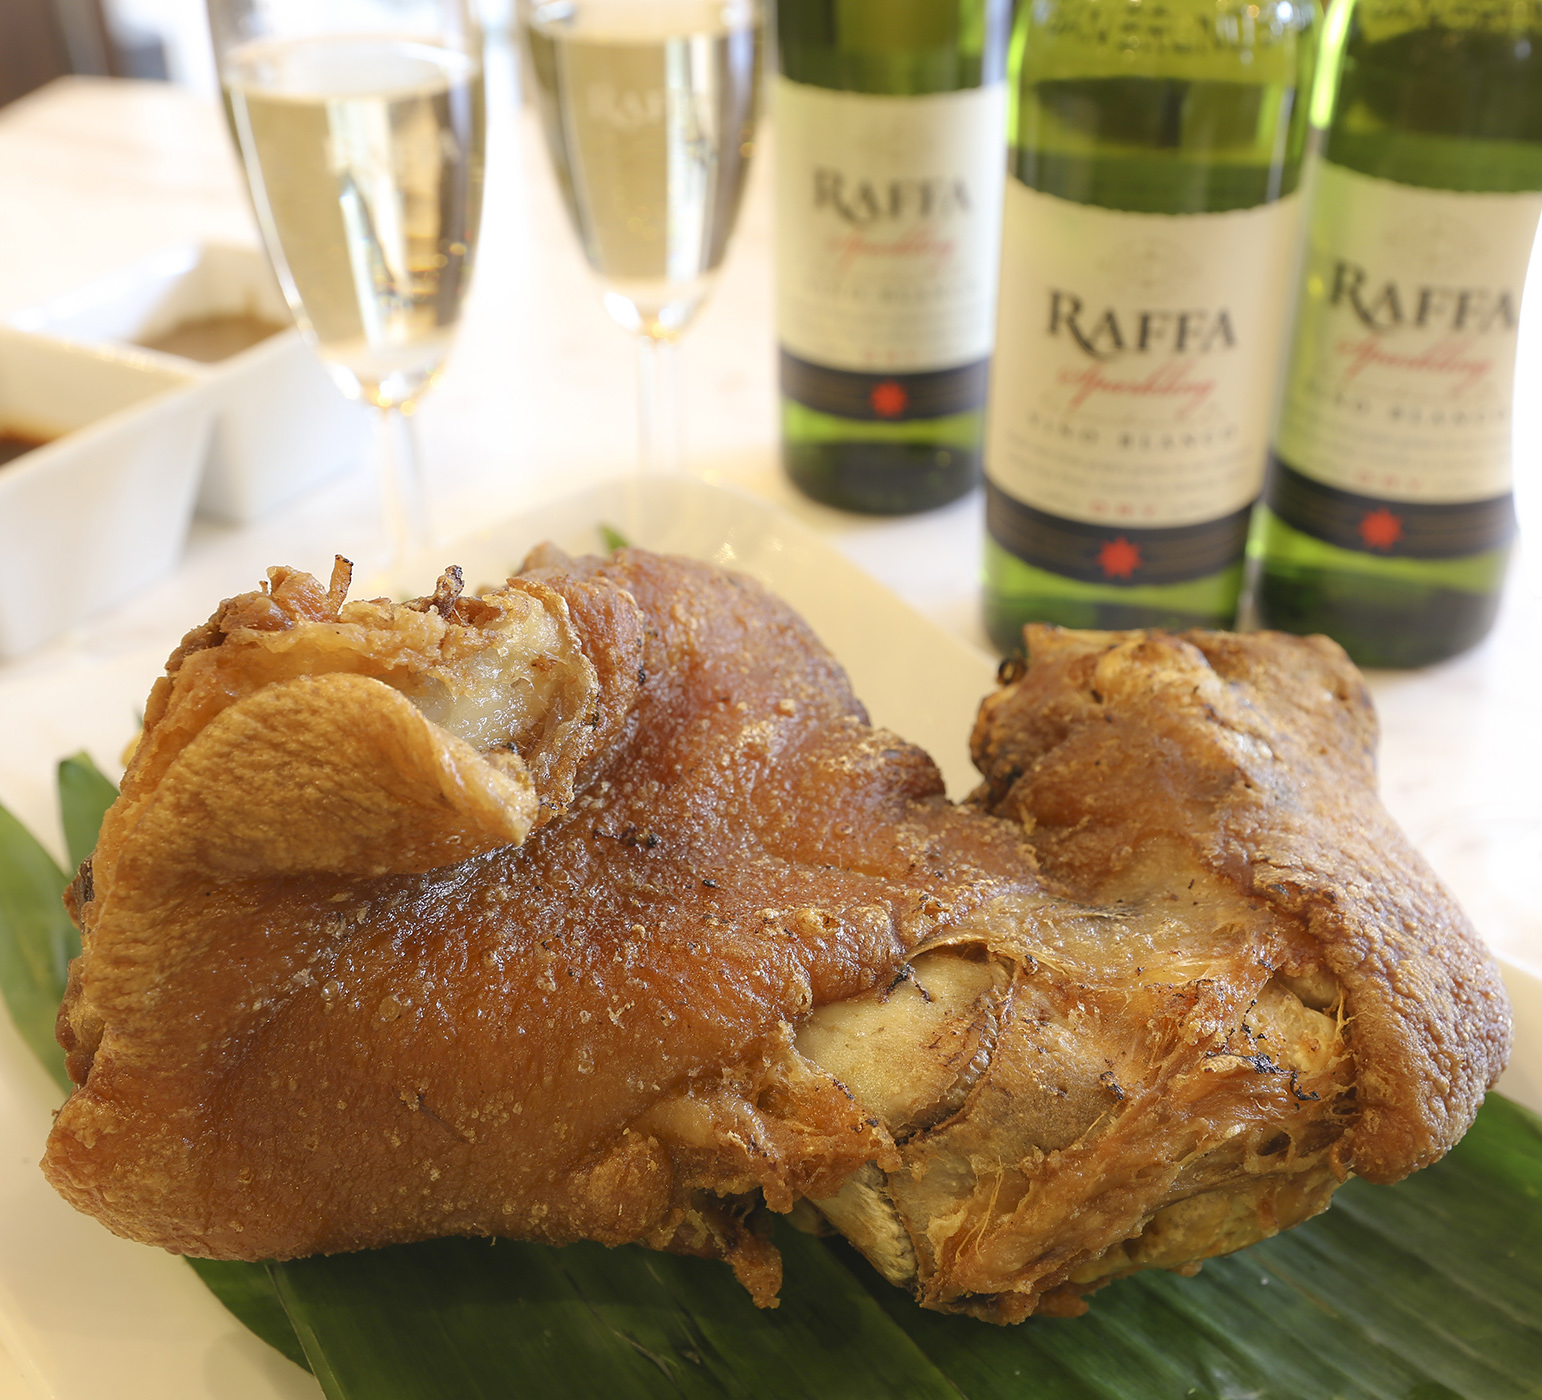 The 'Pair and Square' combination of Classic Crispy Pata and three bottles of Raffa Sparkling Wine